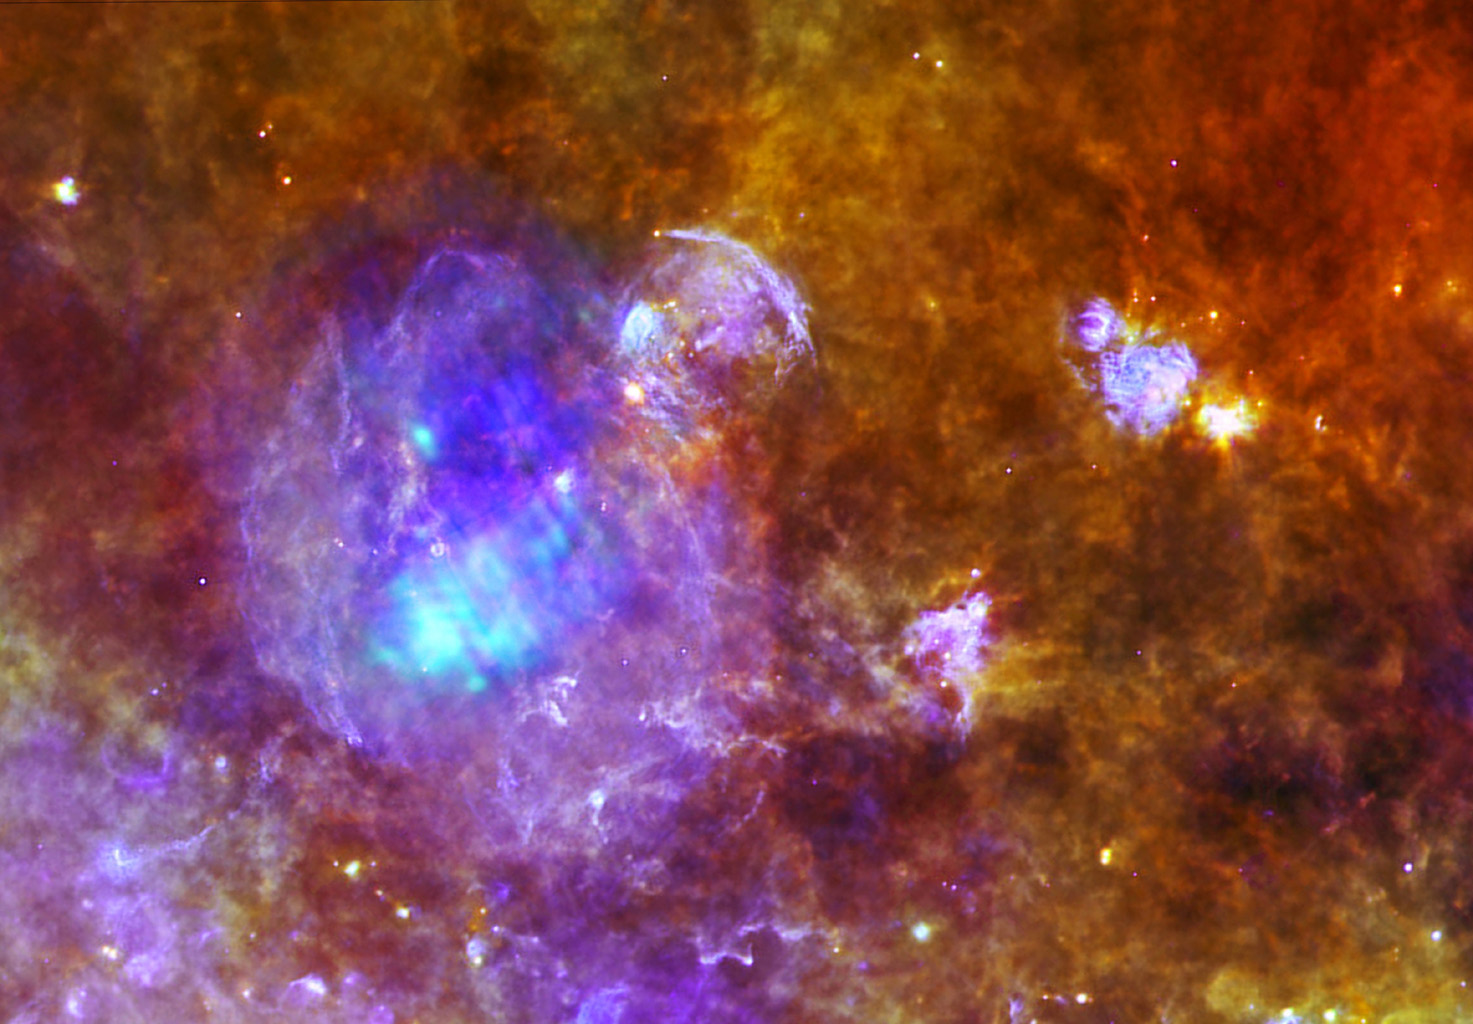 W44 is located around 10,000 light-years away, within a forest of dense star-forming clouds in the constellation of Aquila, the Eagle. This image combines data from ESA's Herschel and XXM-Newton space observatories.